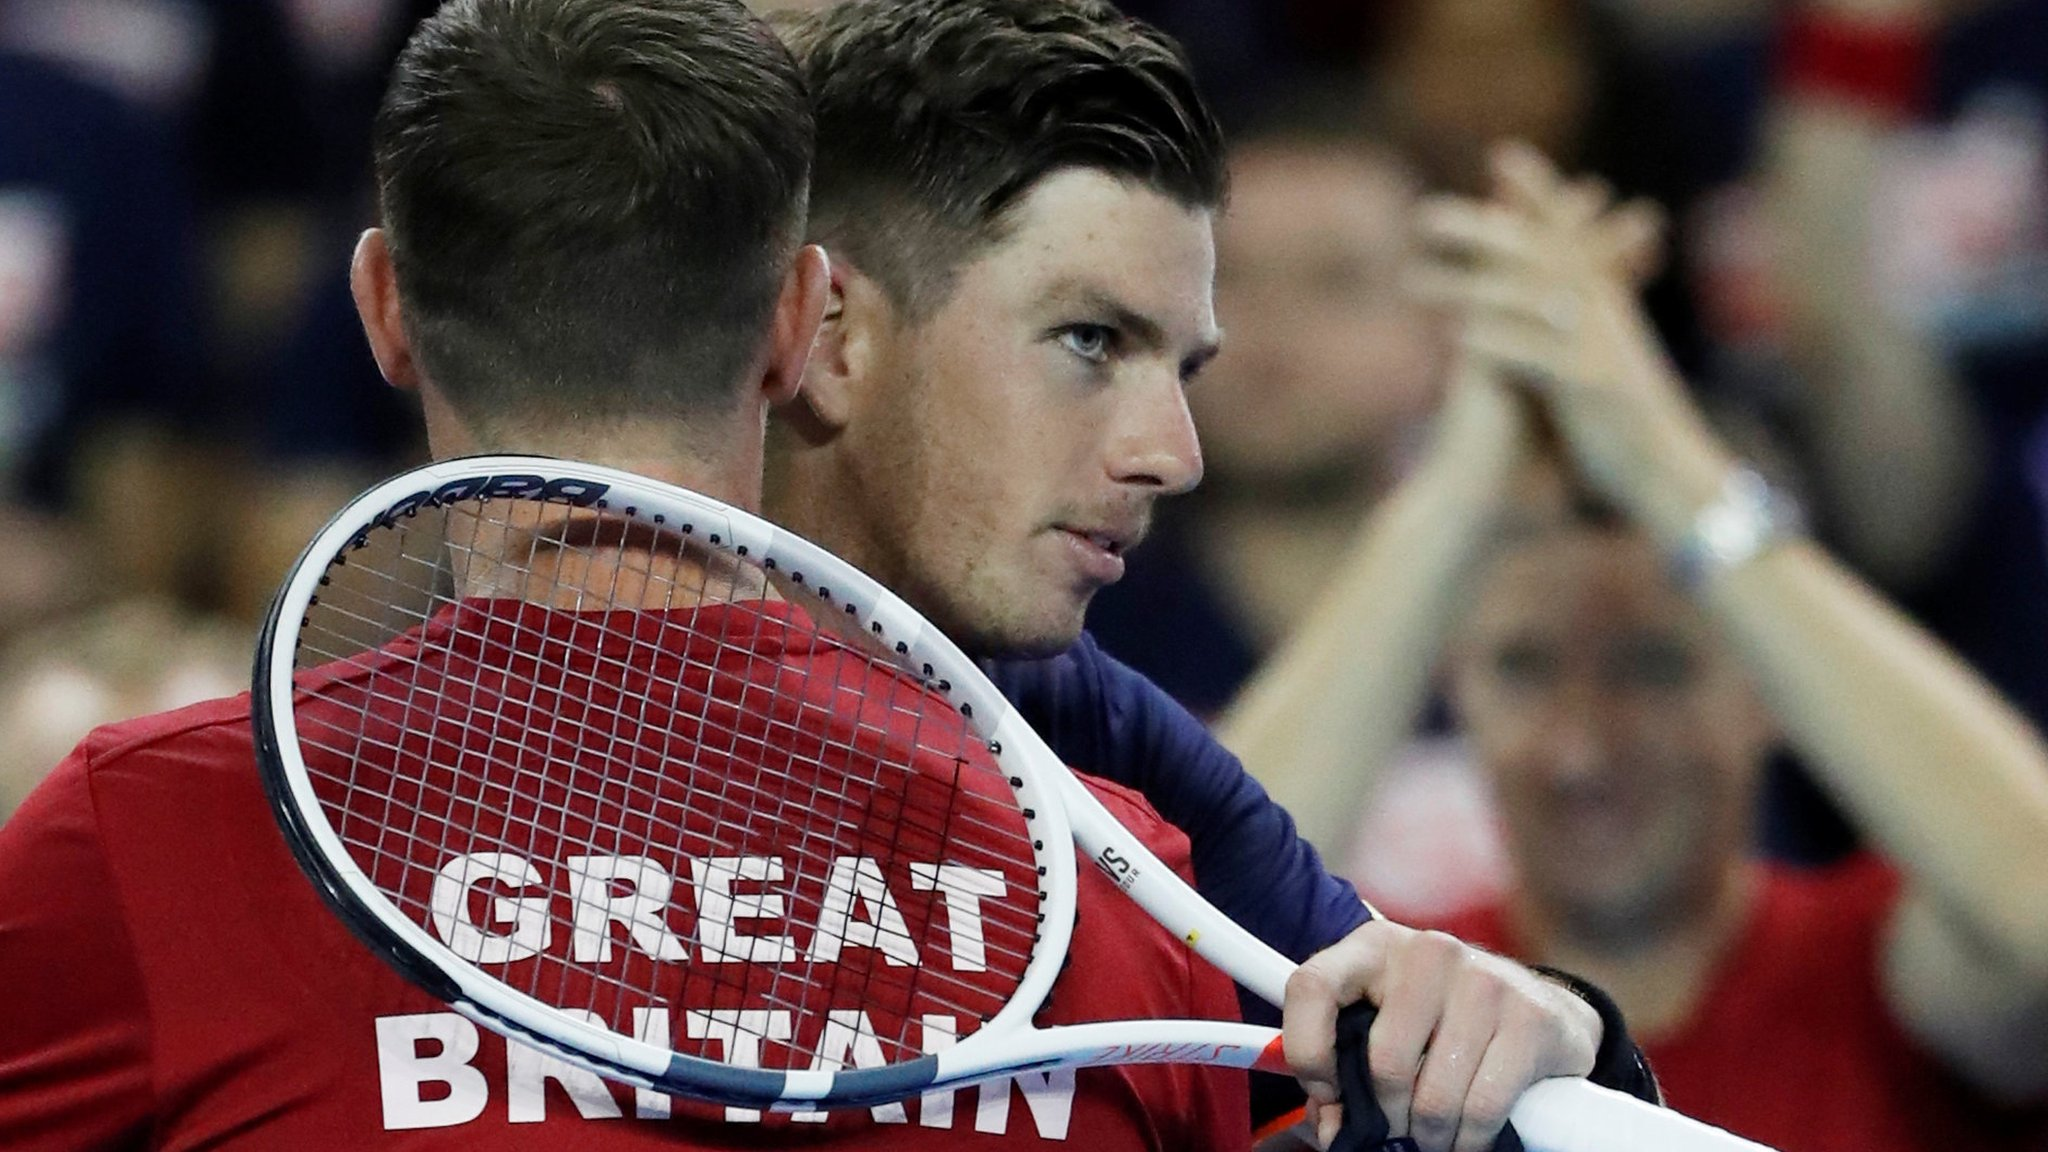 Norrie wins to give Great Britain victory in Davis Cup tie